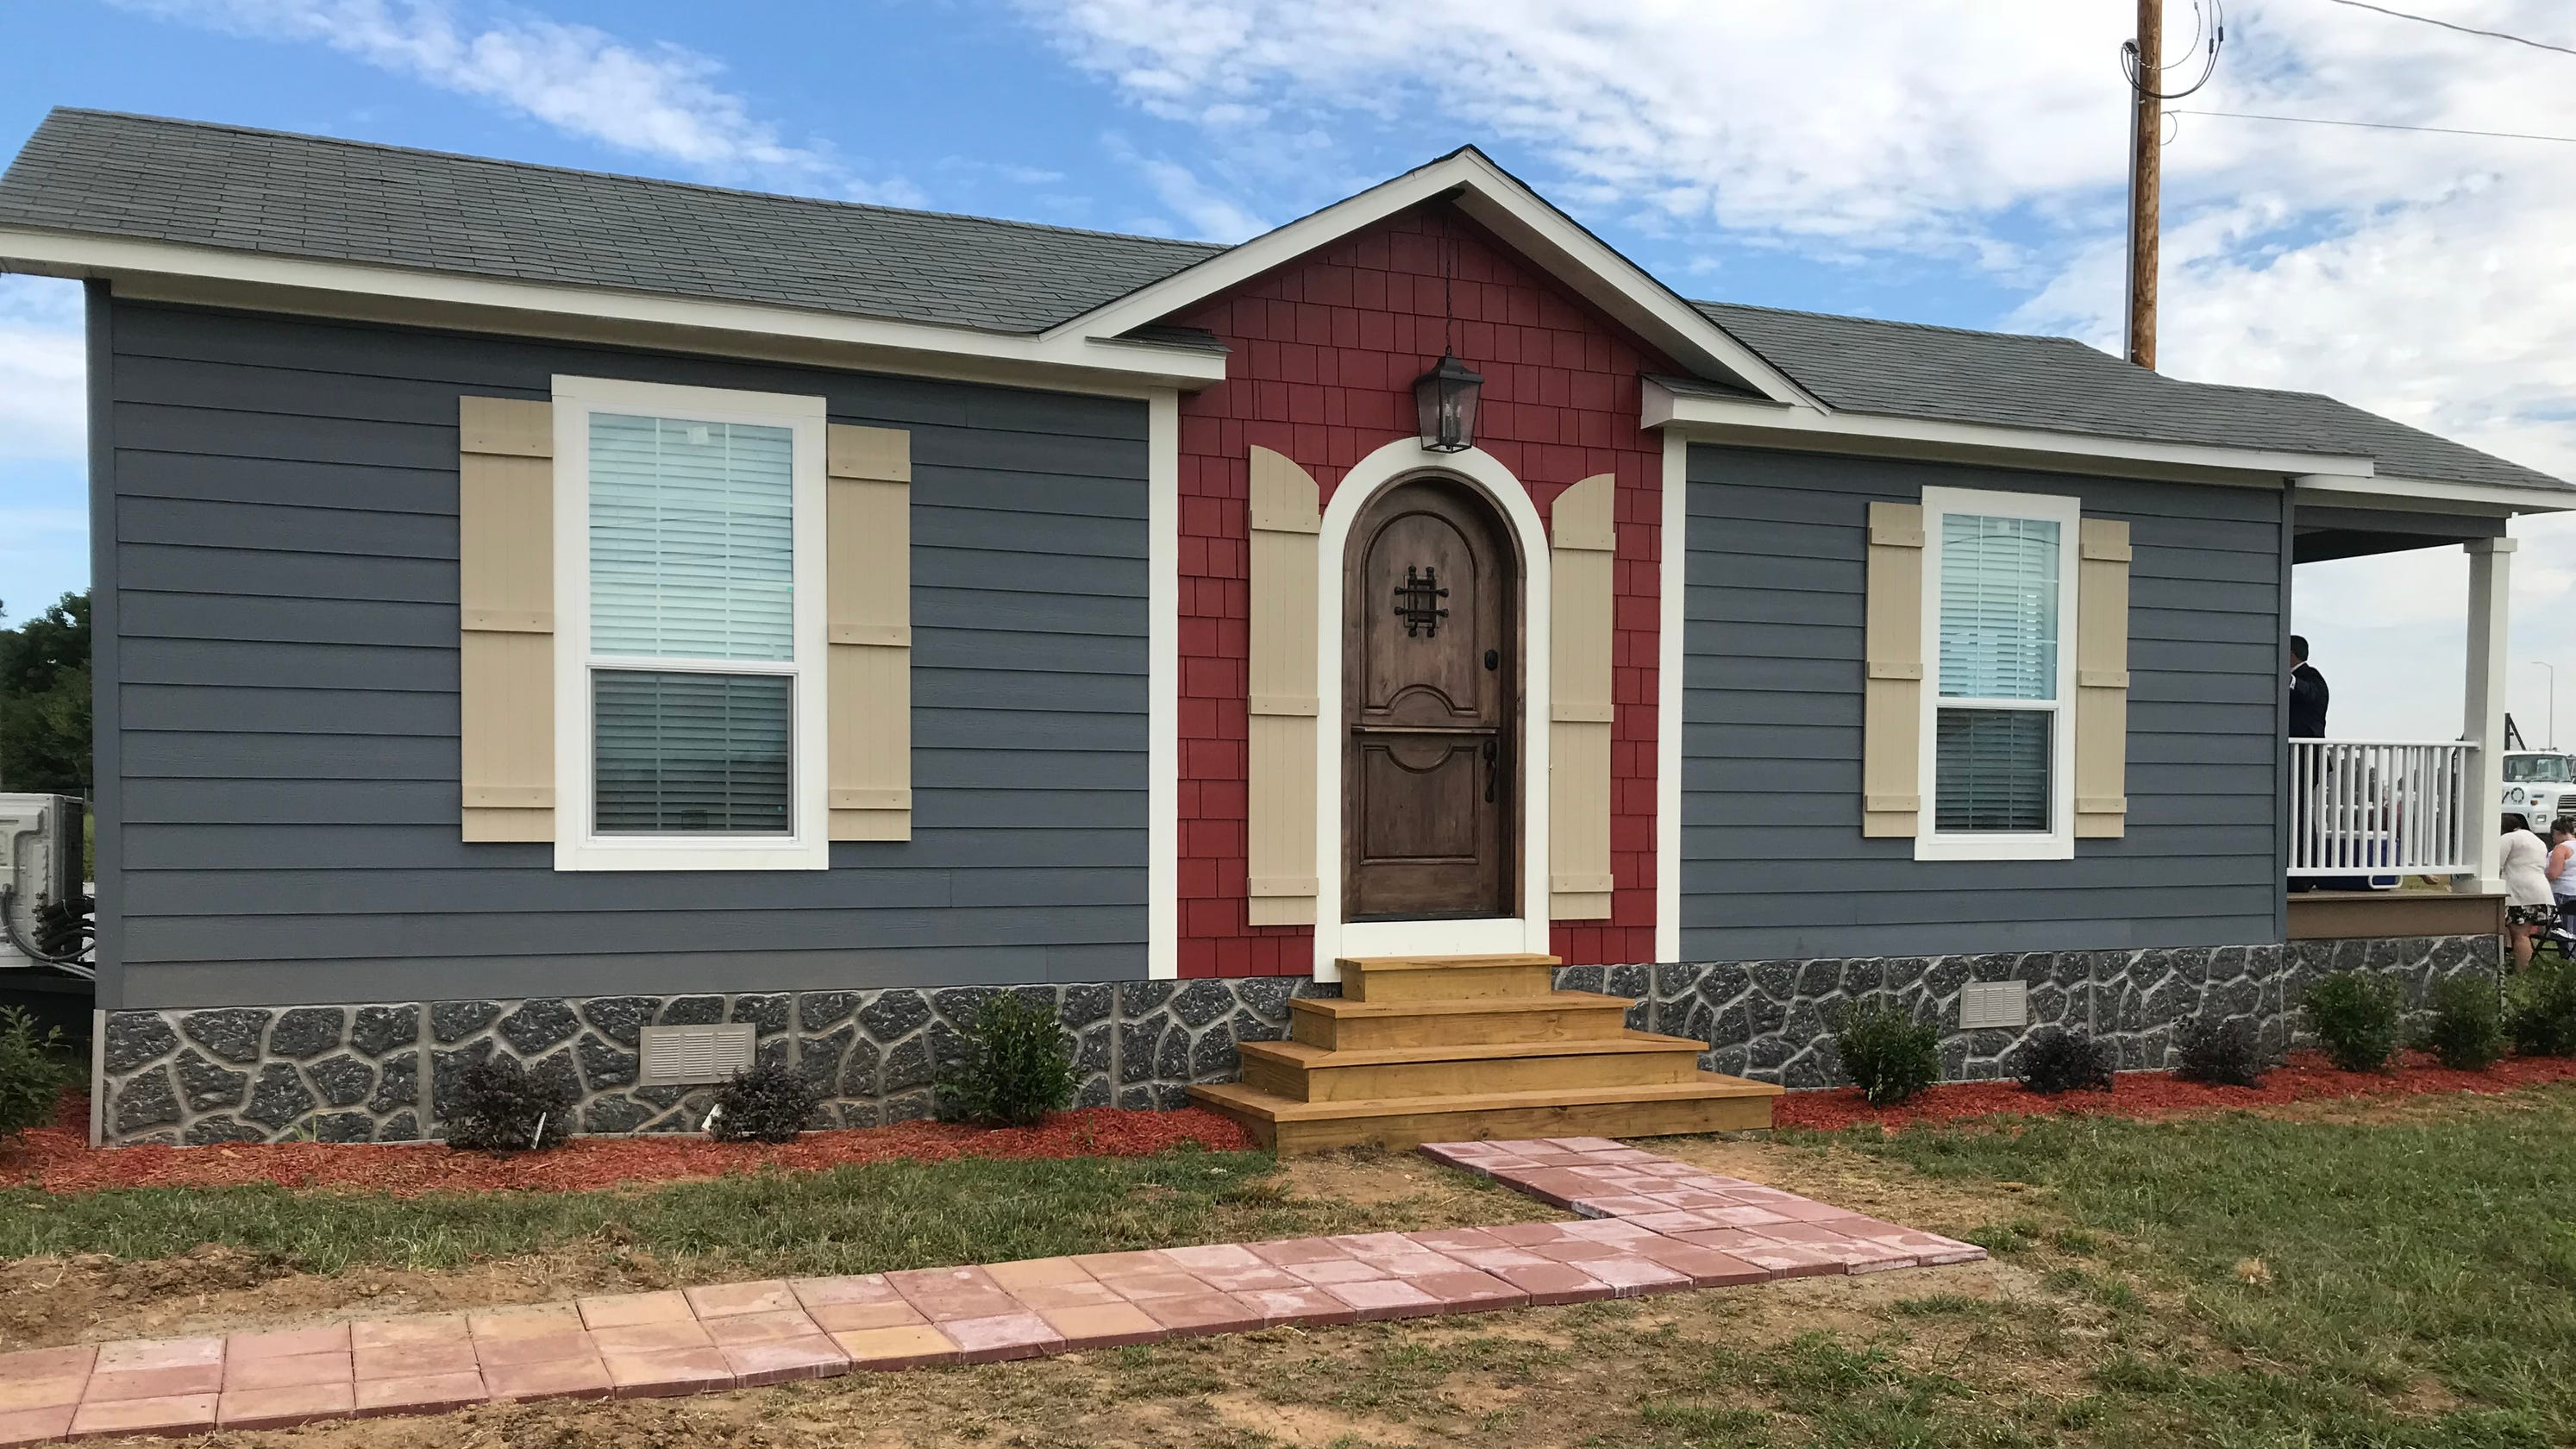 Smart homes for seniors, disabled adults unveiled in Clarksville